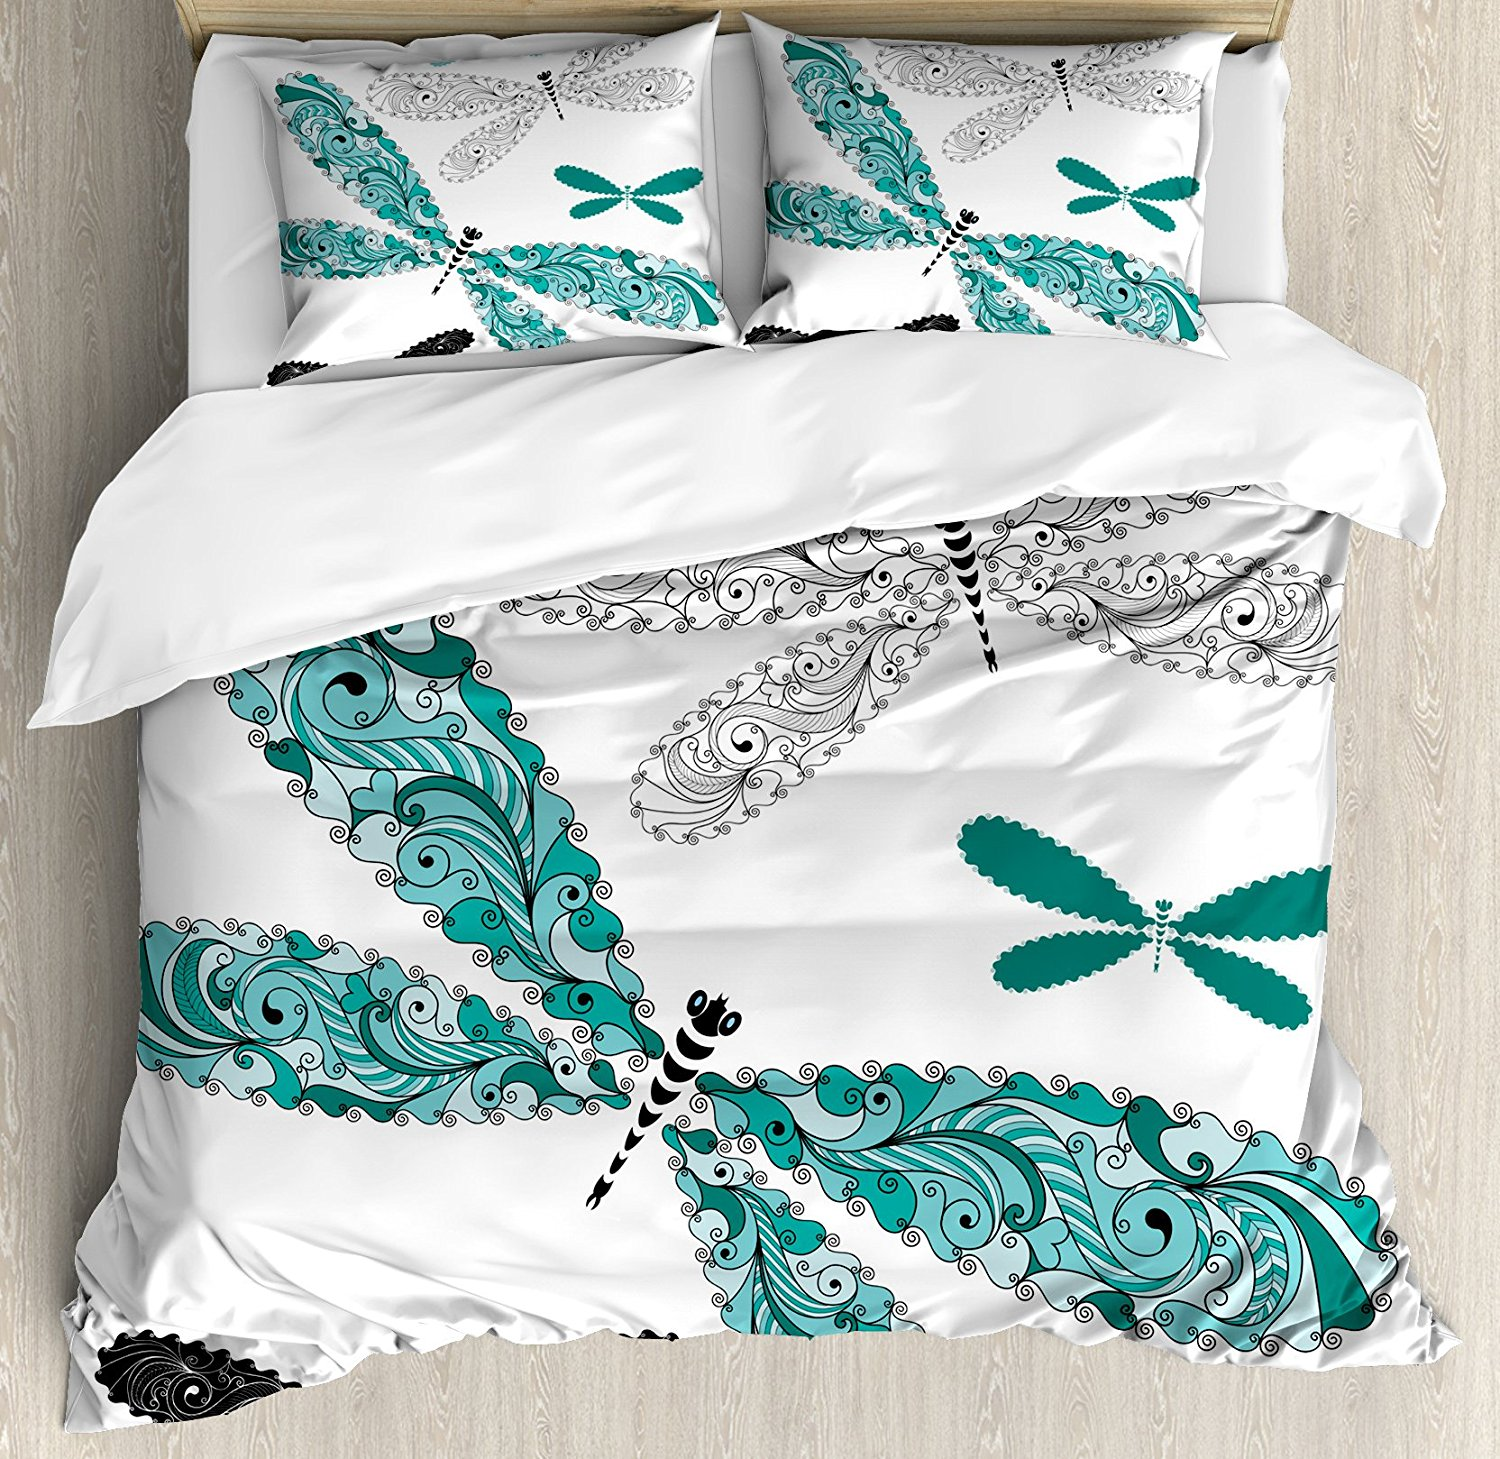 Cheap Dragonfly Duvet Find Dragonfly Duvet Deals On Line At Alibaba Com